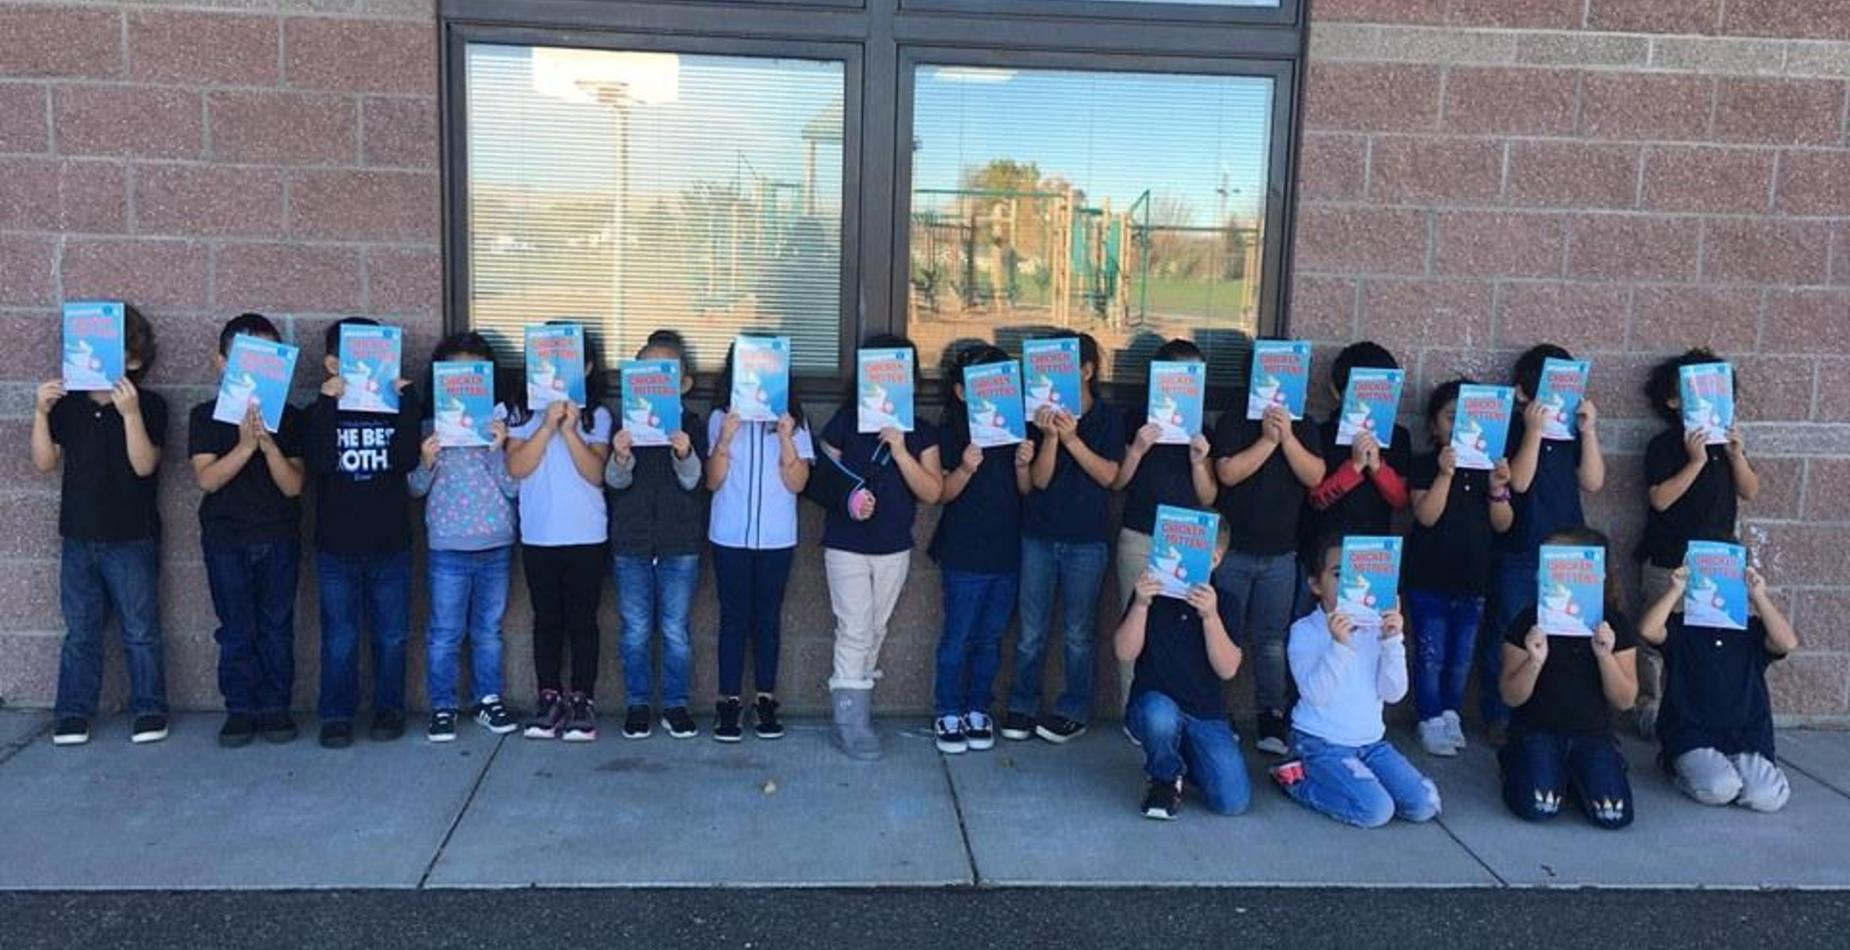 A group of kindergarten students with their donated scholastic books covering their faces.